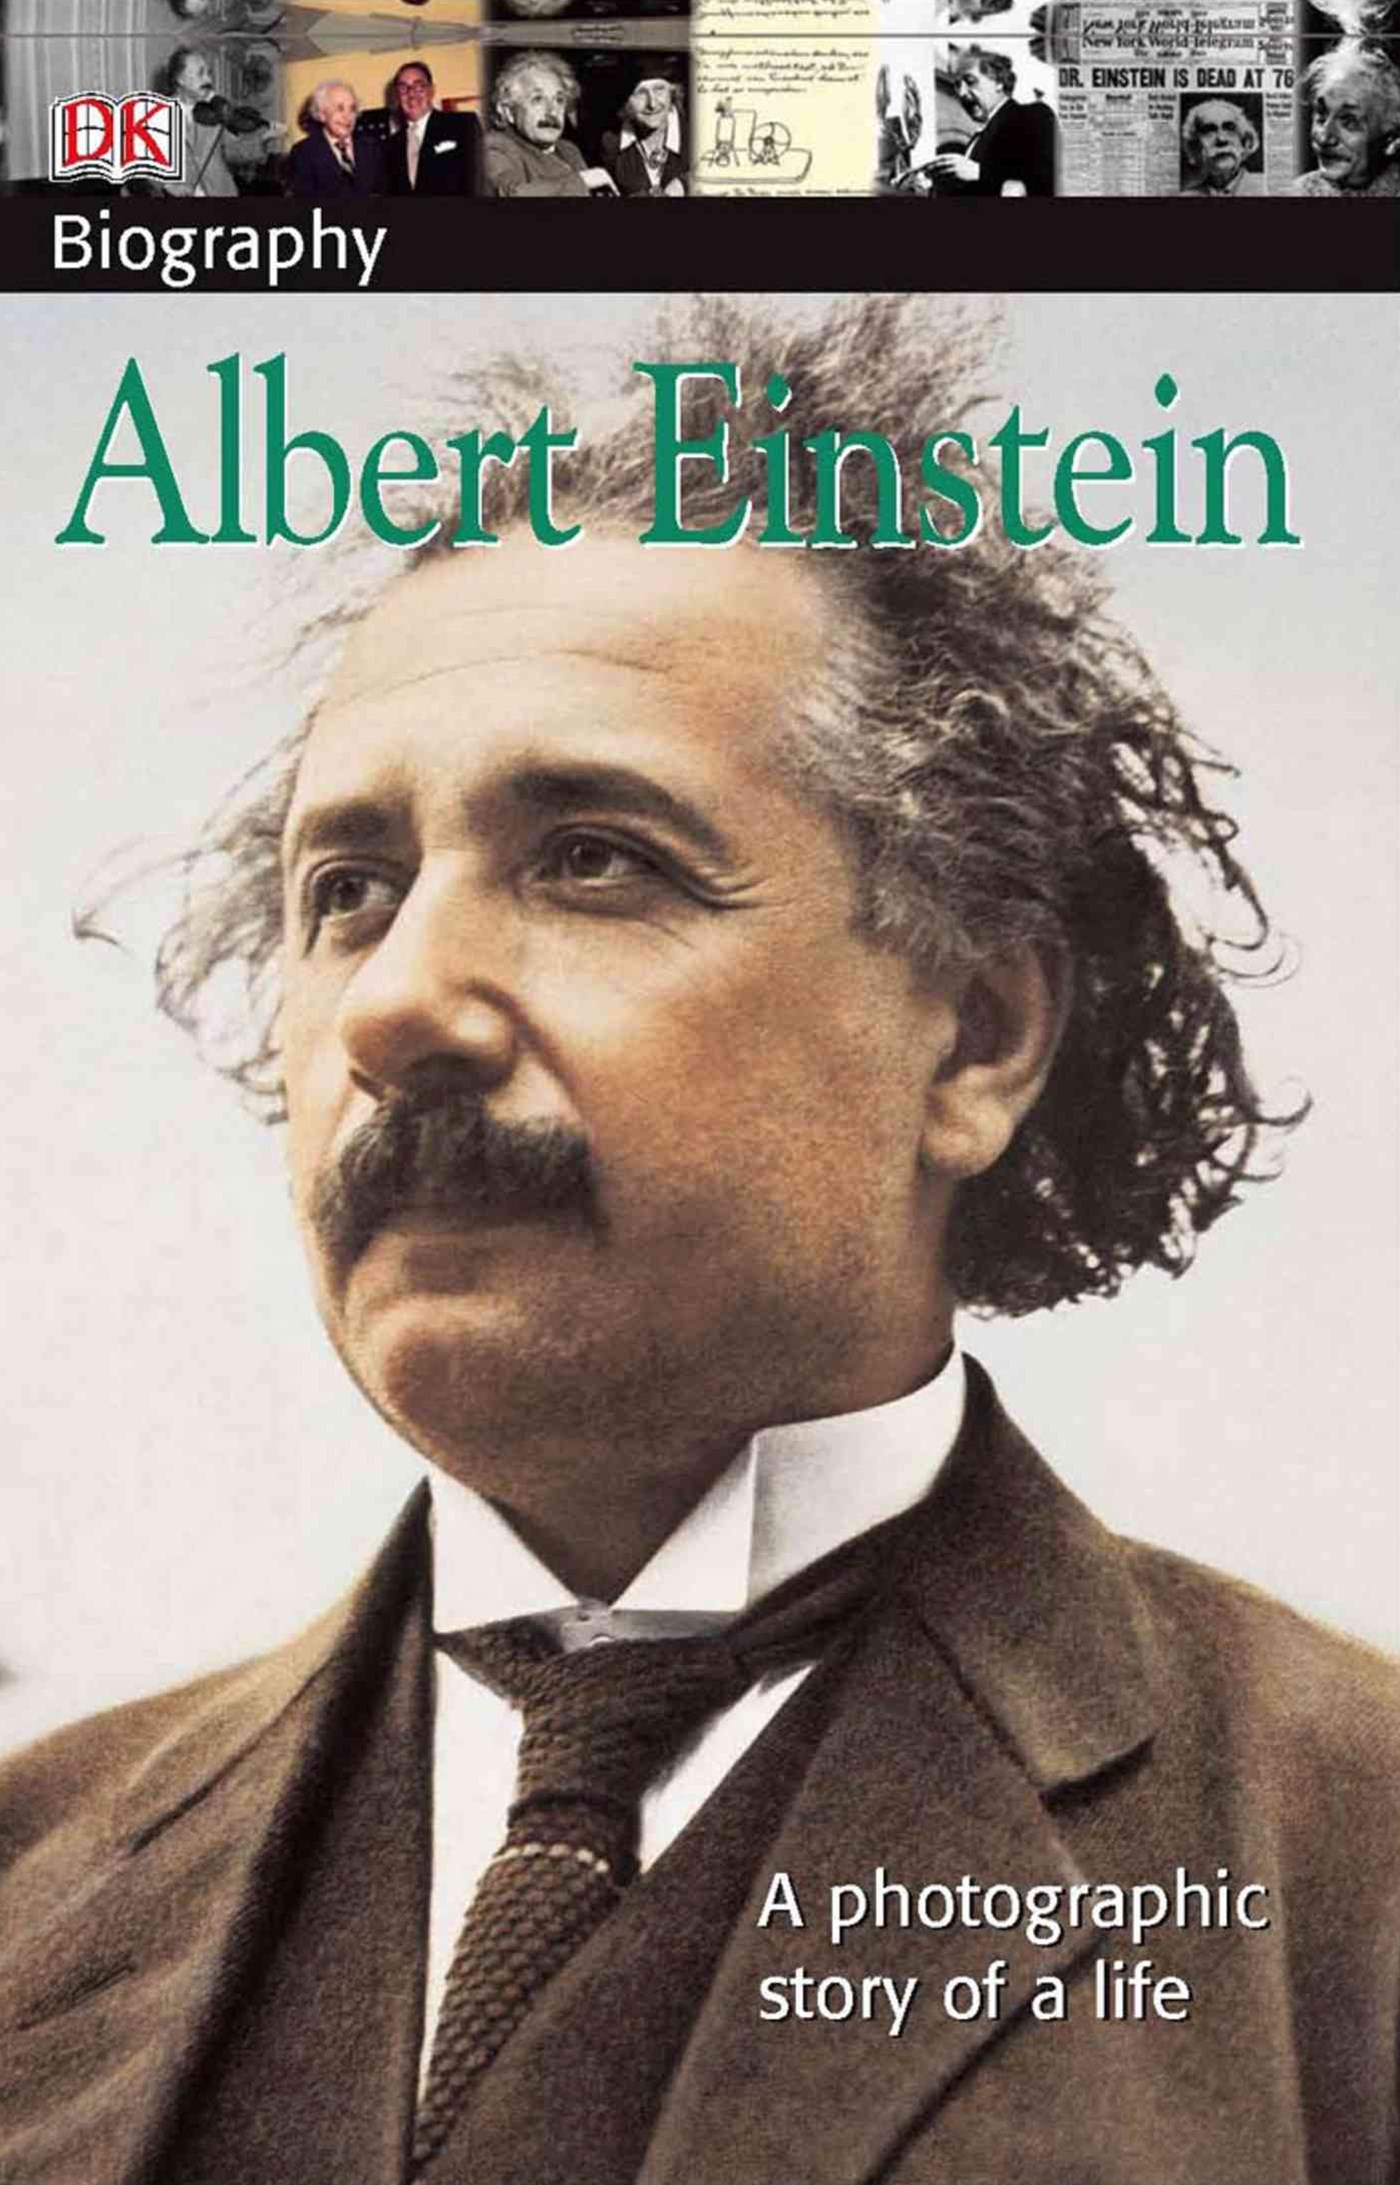 Albert Einstein - A Photographic Story of a Life